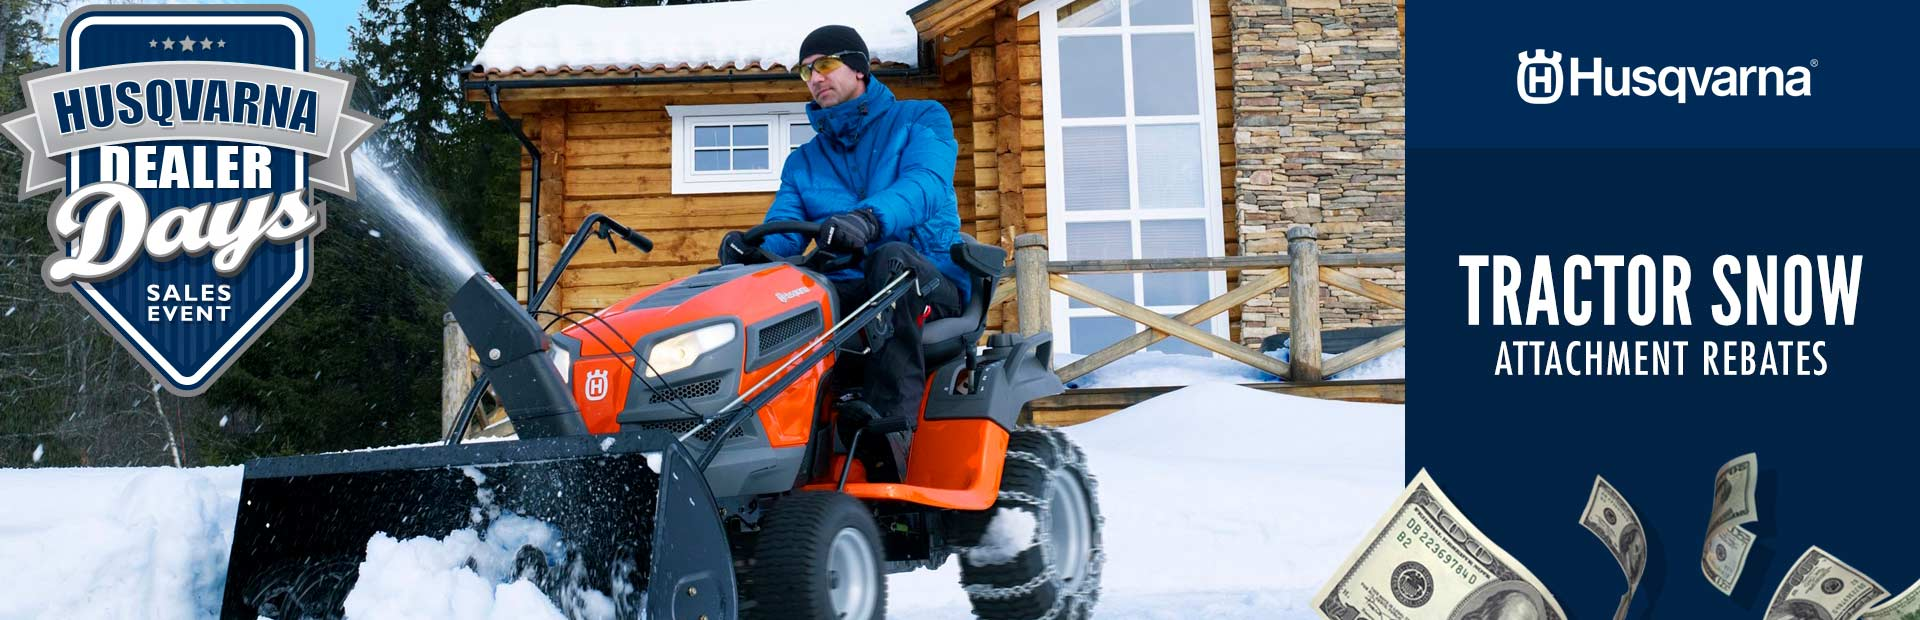 Husqvarna: Tractor Snow Attachment Rebates